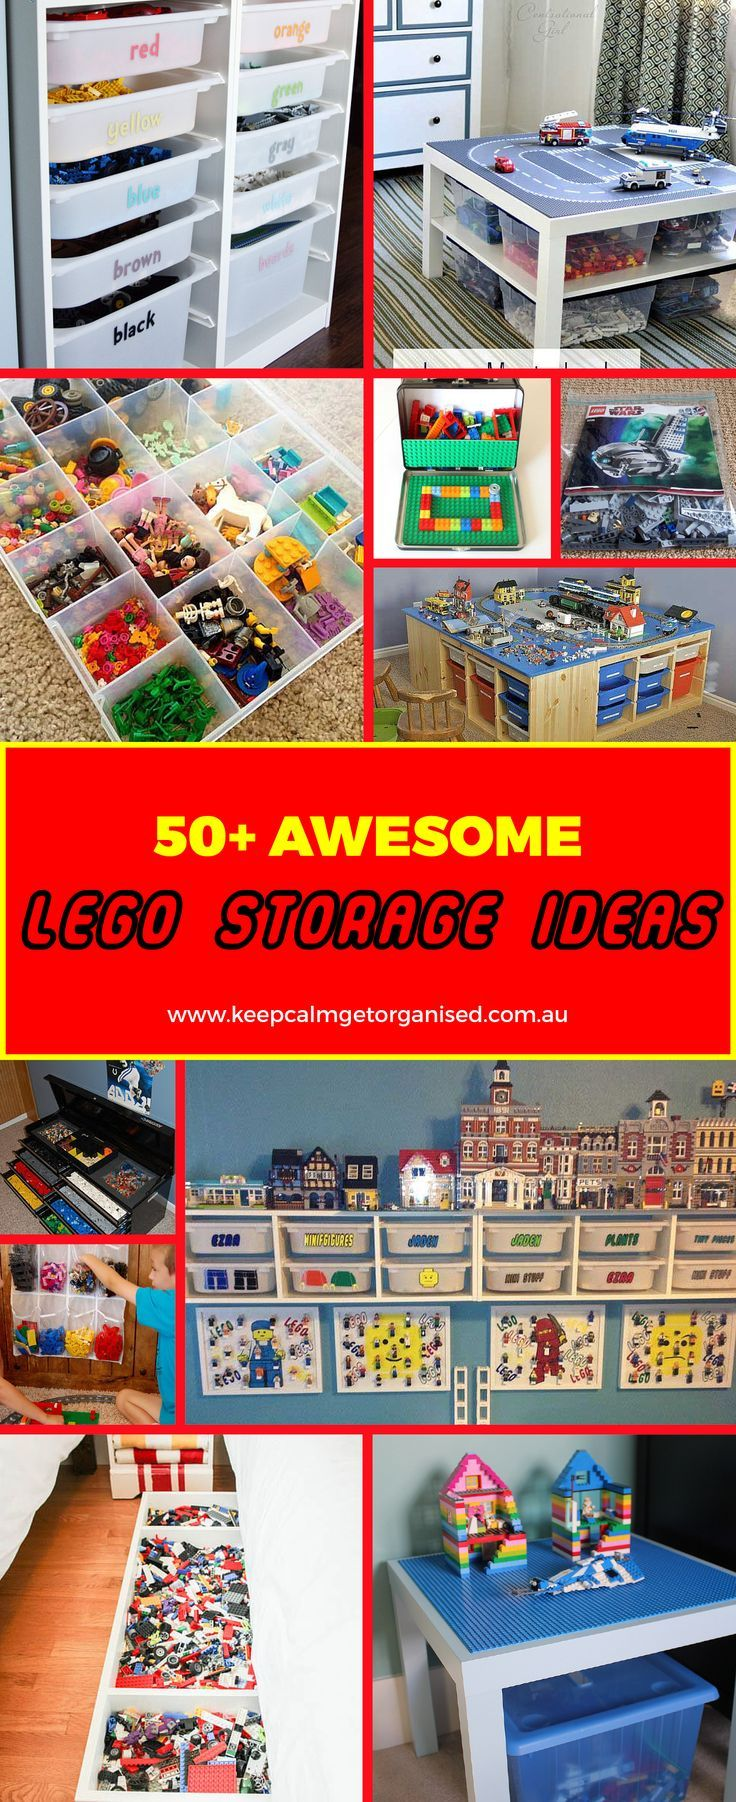 lego storage ideas the ultimate lego organisation guide lego aufbewahrung. Black Bedroom Furniture Sets. Home Design Ideas